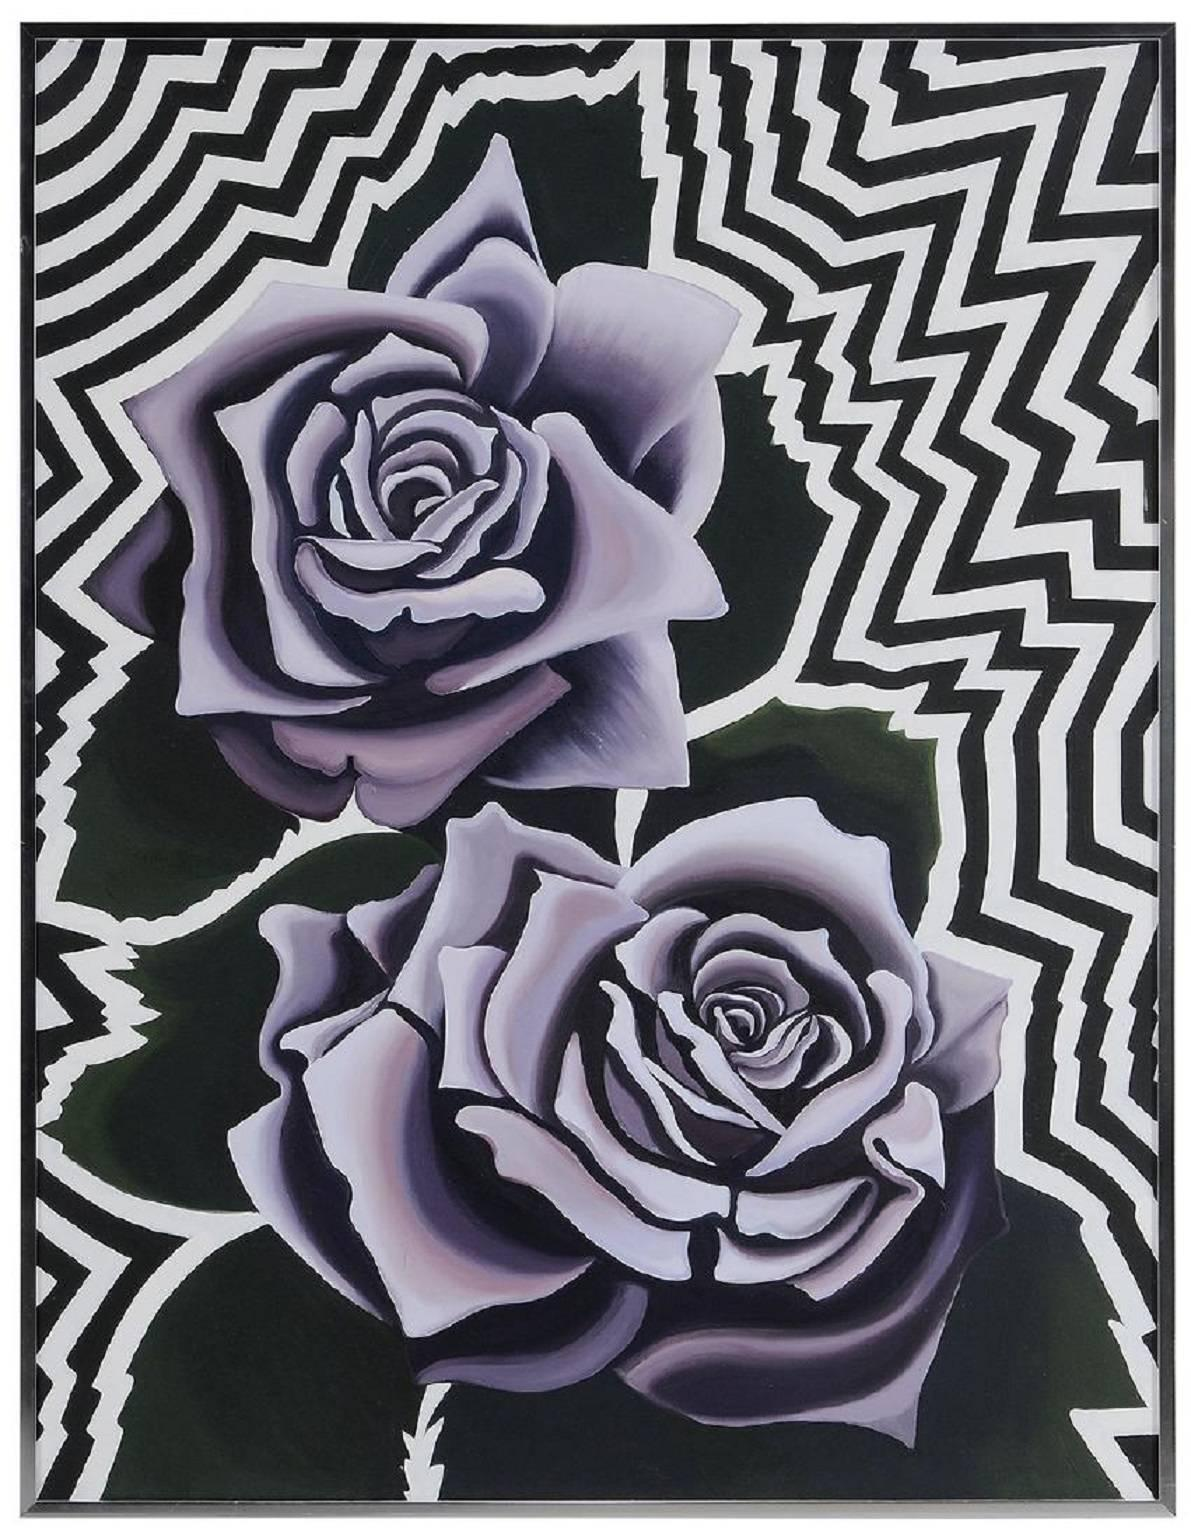 Two Violet Roses 1974, Op Art Floral Oil on Canvas Painting